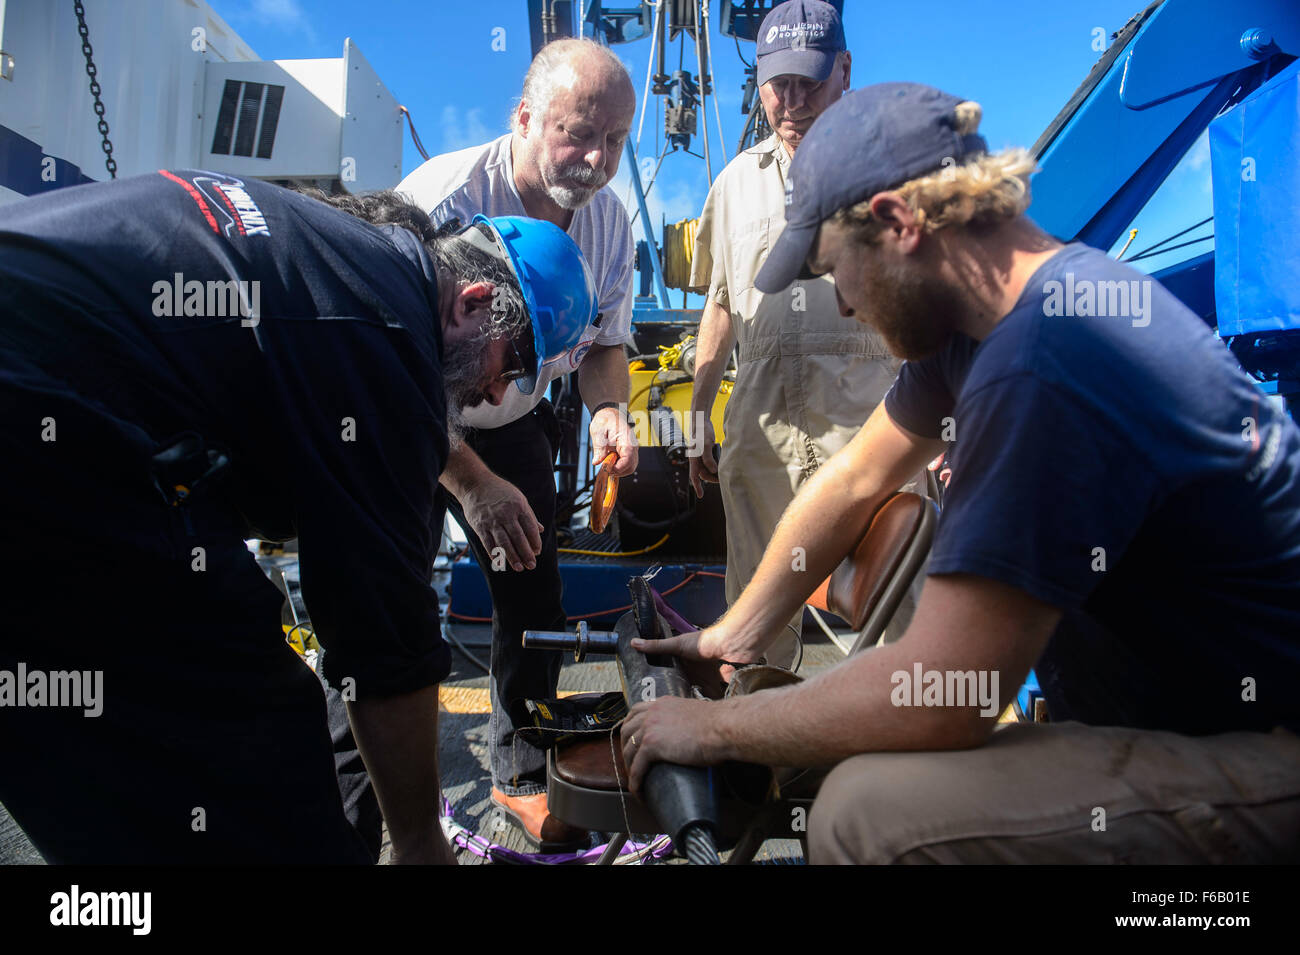 151023-N-RZ218-131   BAHAMAS (Oct. 23, 2015) Contractors with Phoenix International Incorporated prepare a tow pinger - Stock Image